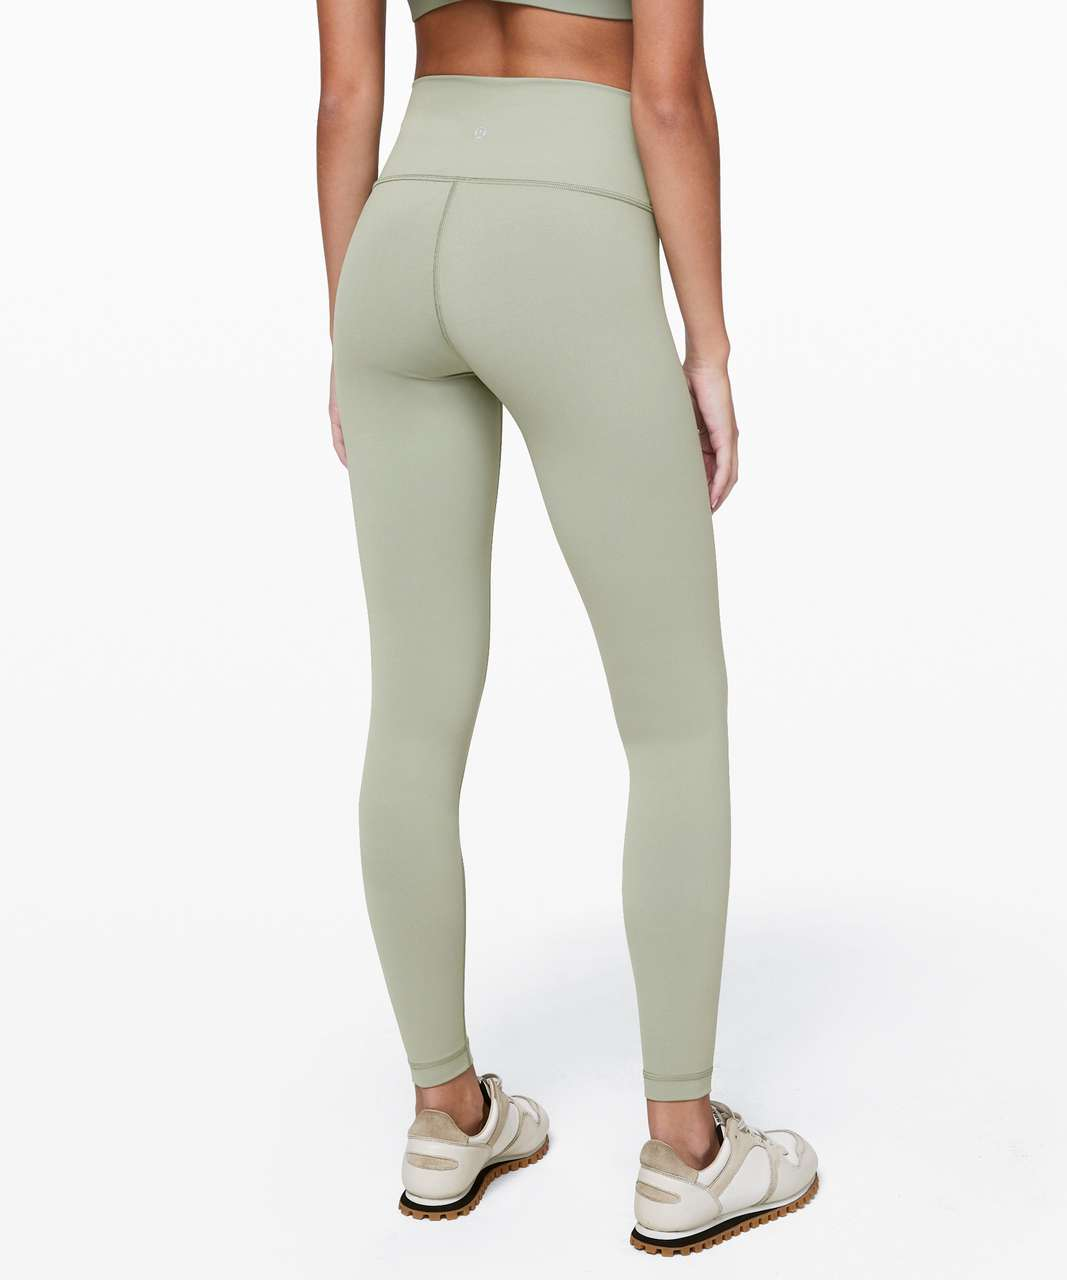 "Lululemon Wunder Under High-Rise Tight 31"" *Full-On Luxtreme - Sea Moss"